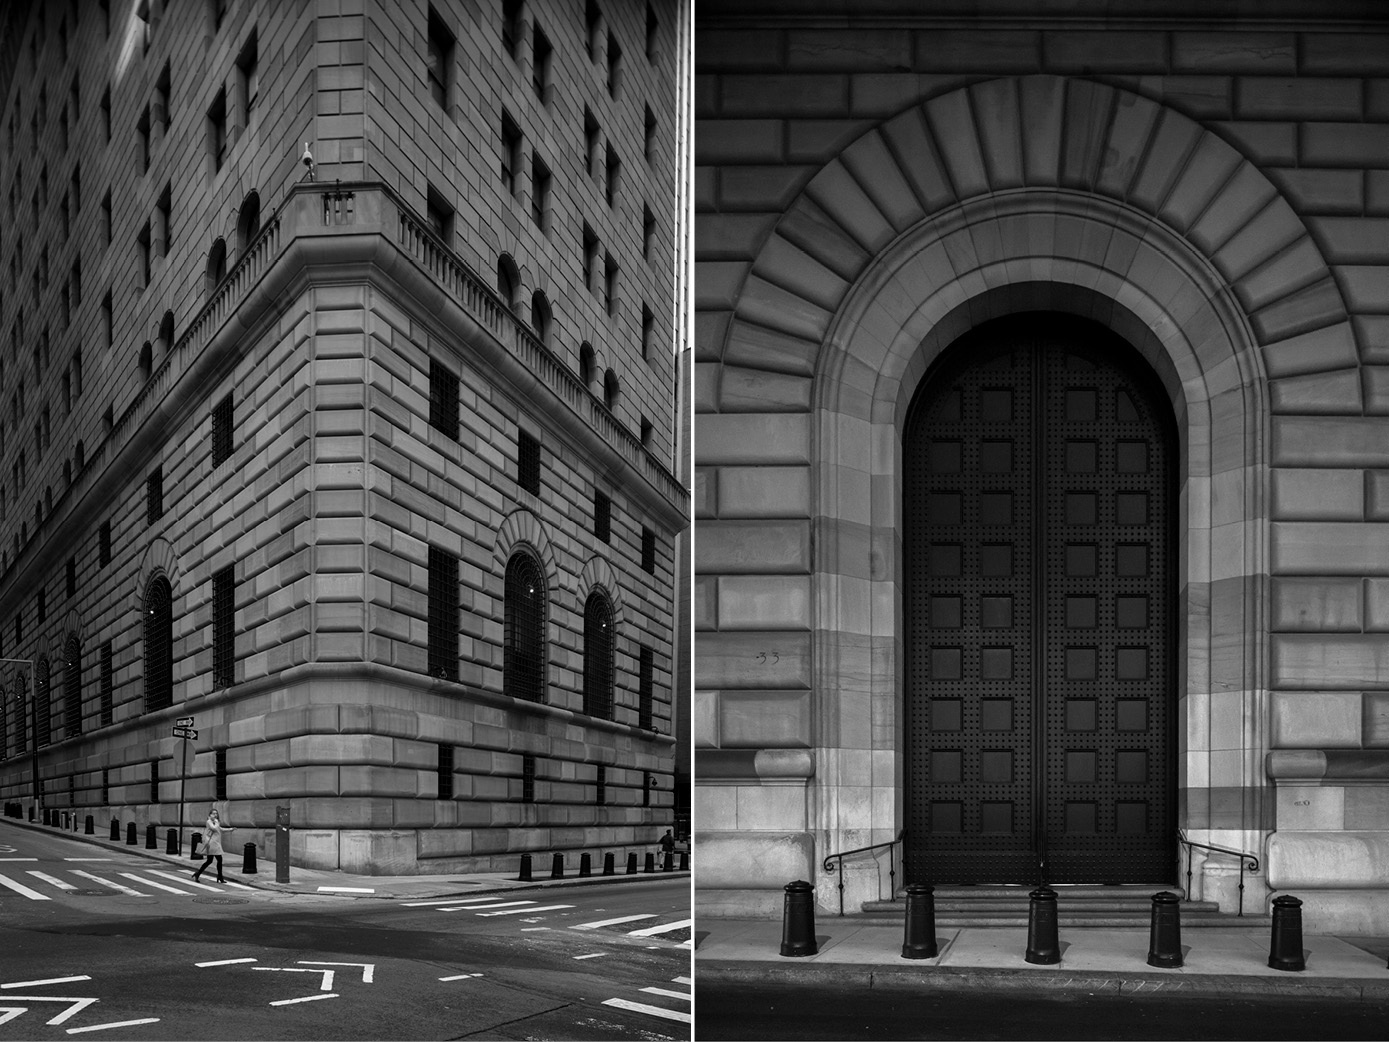 33 Liberty Street - Federal Reserve Bank of New York